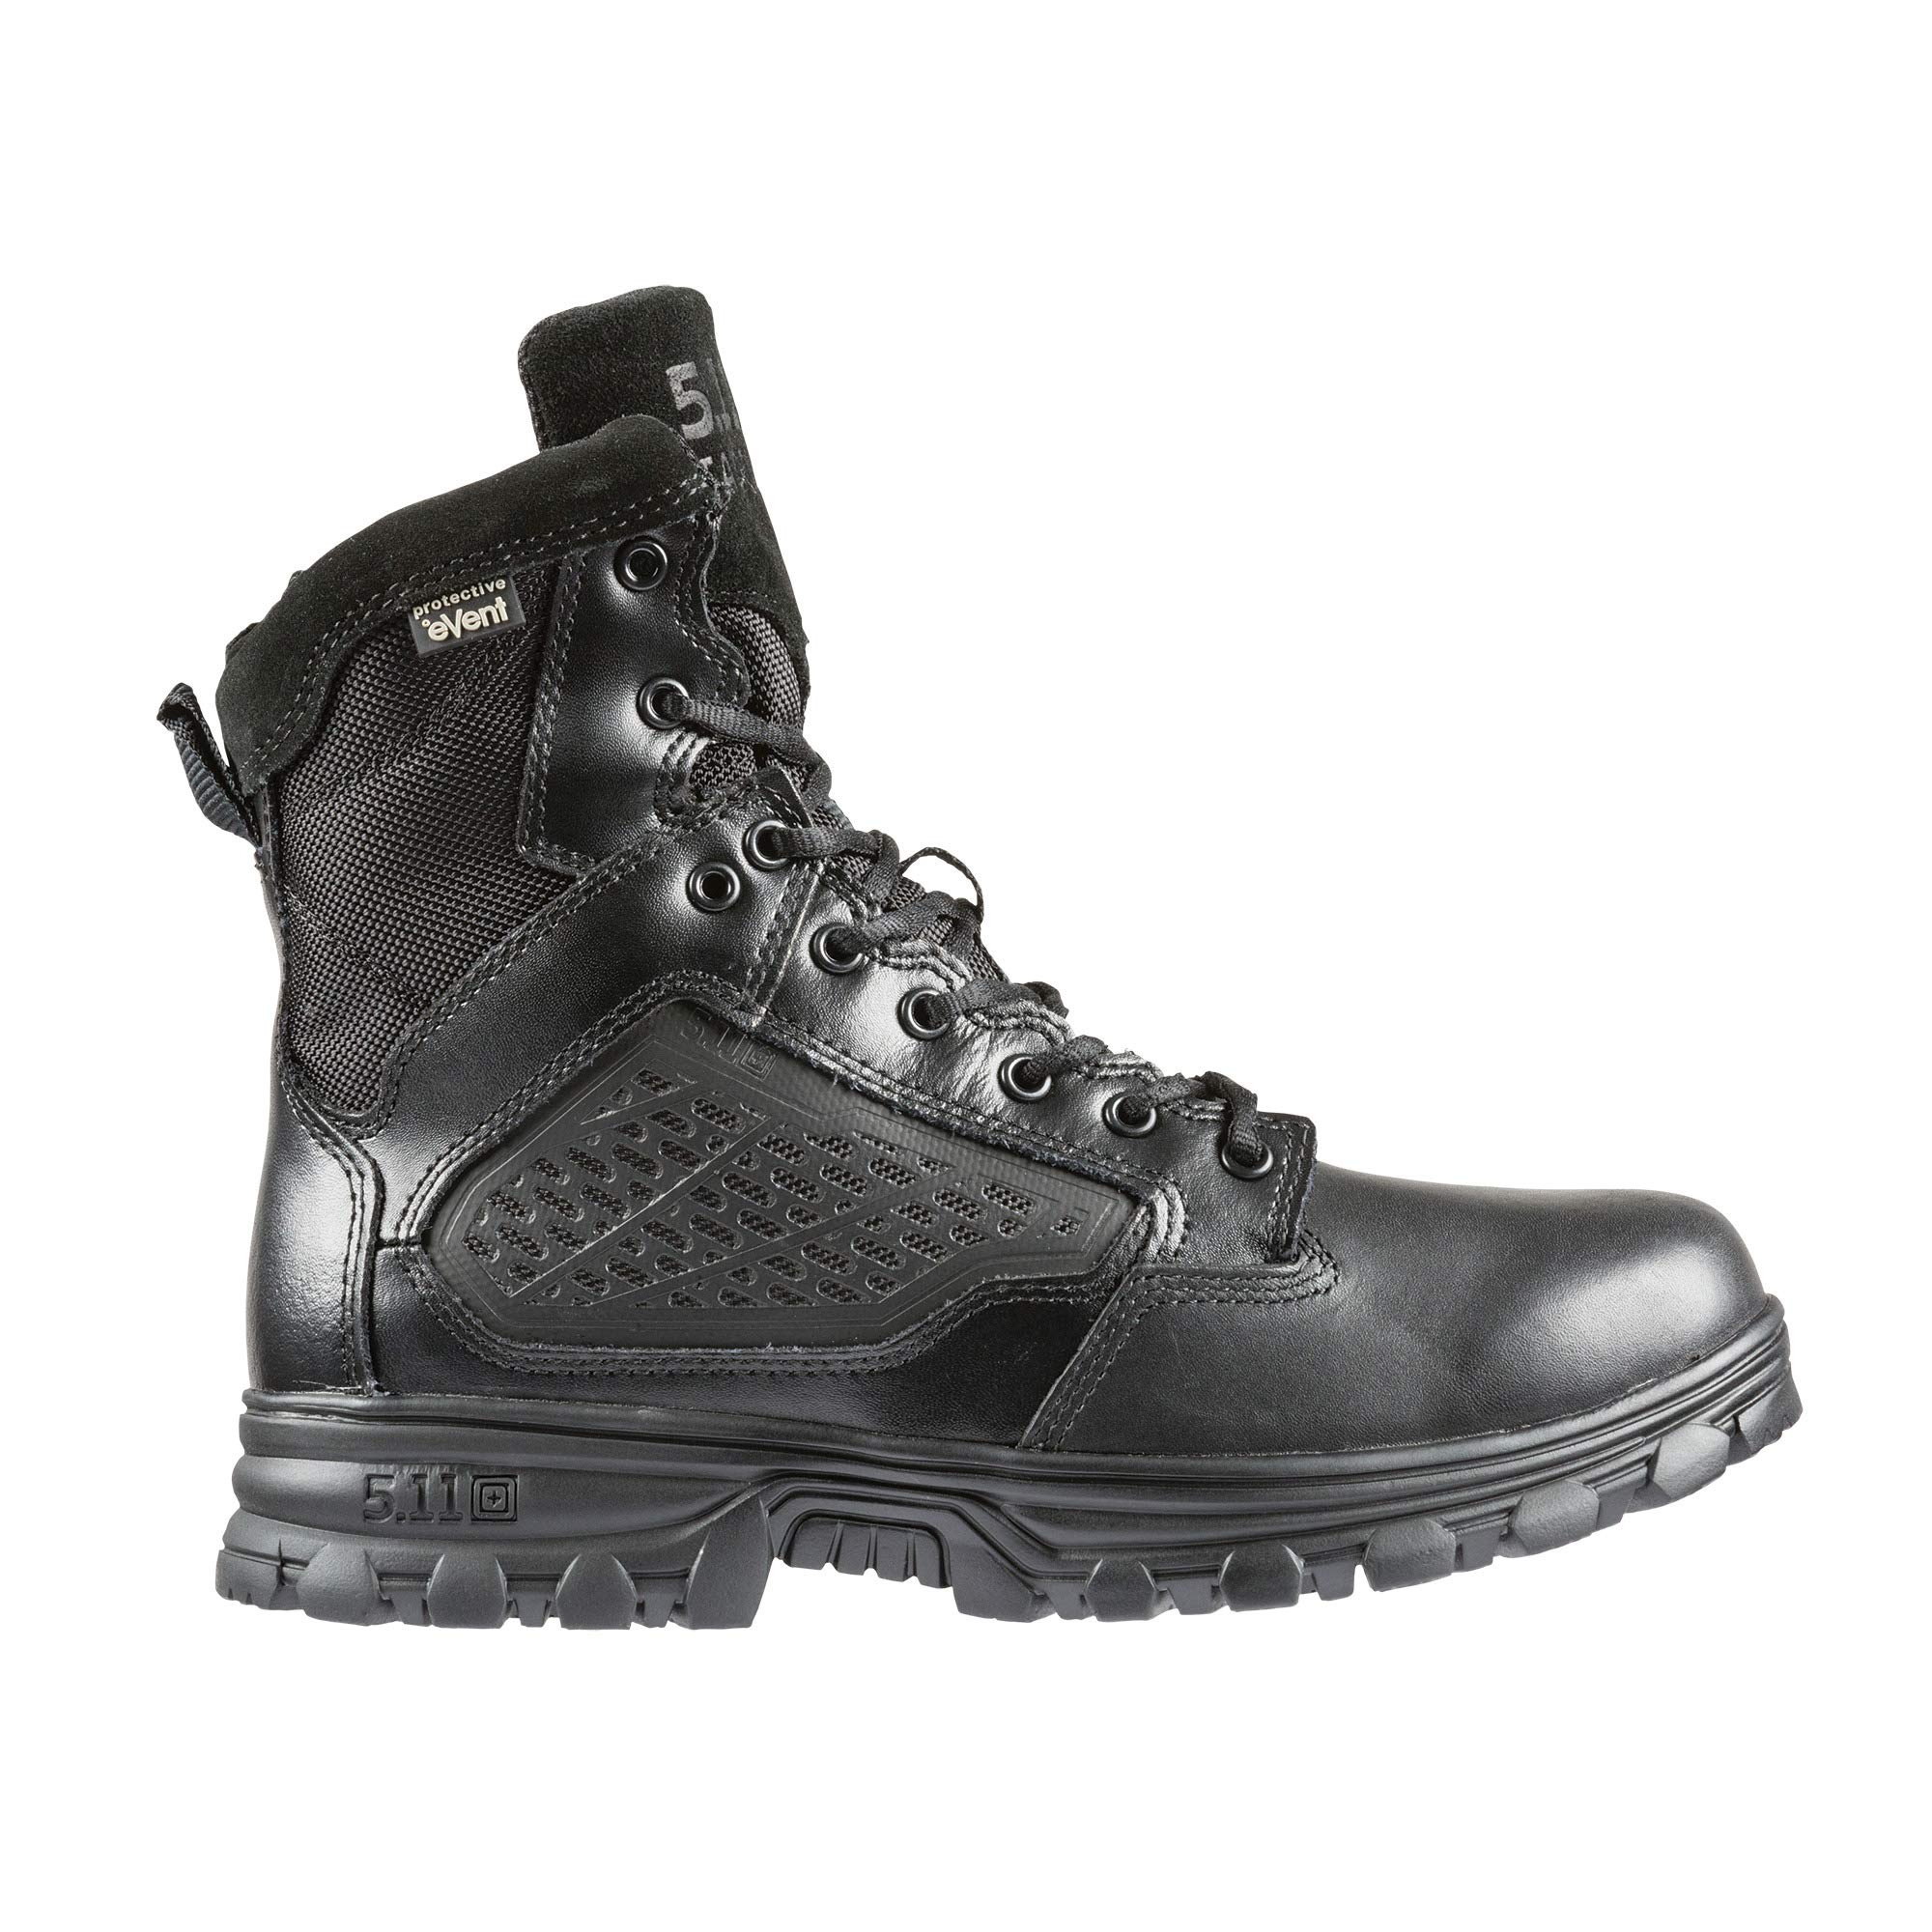 5.11 Tactical EVO 6-Inch Waterproof Boots, Side Zip, Oil/Slip-Resistant Outsole, Style 12313